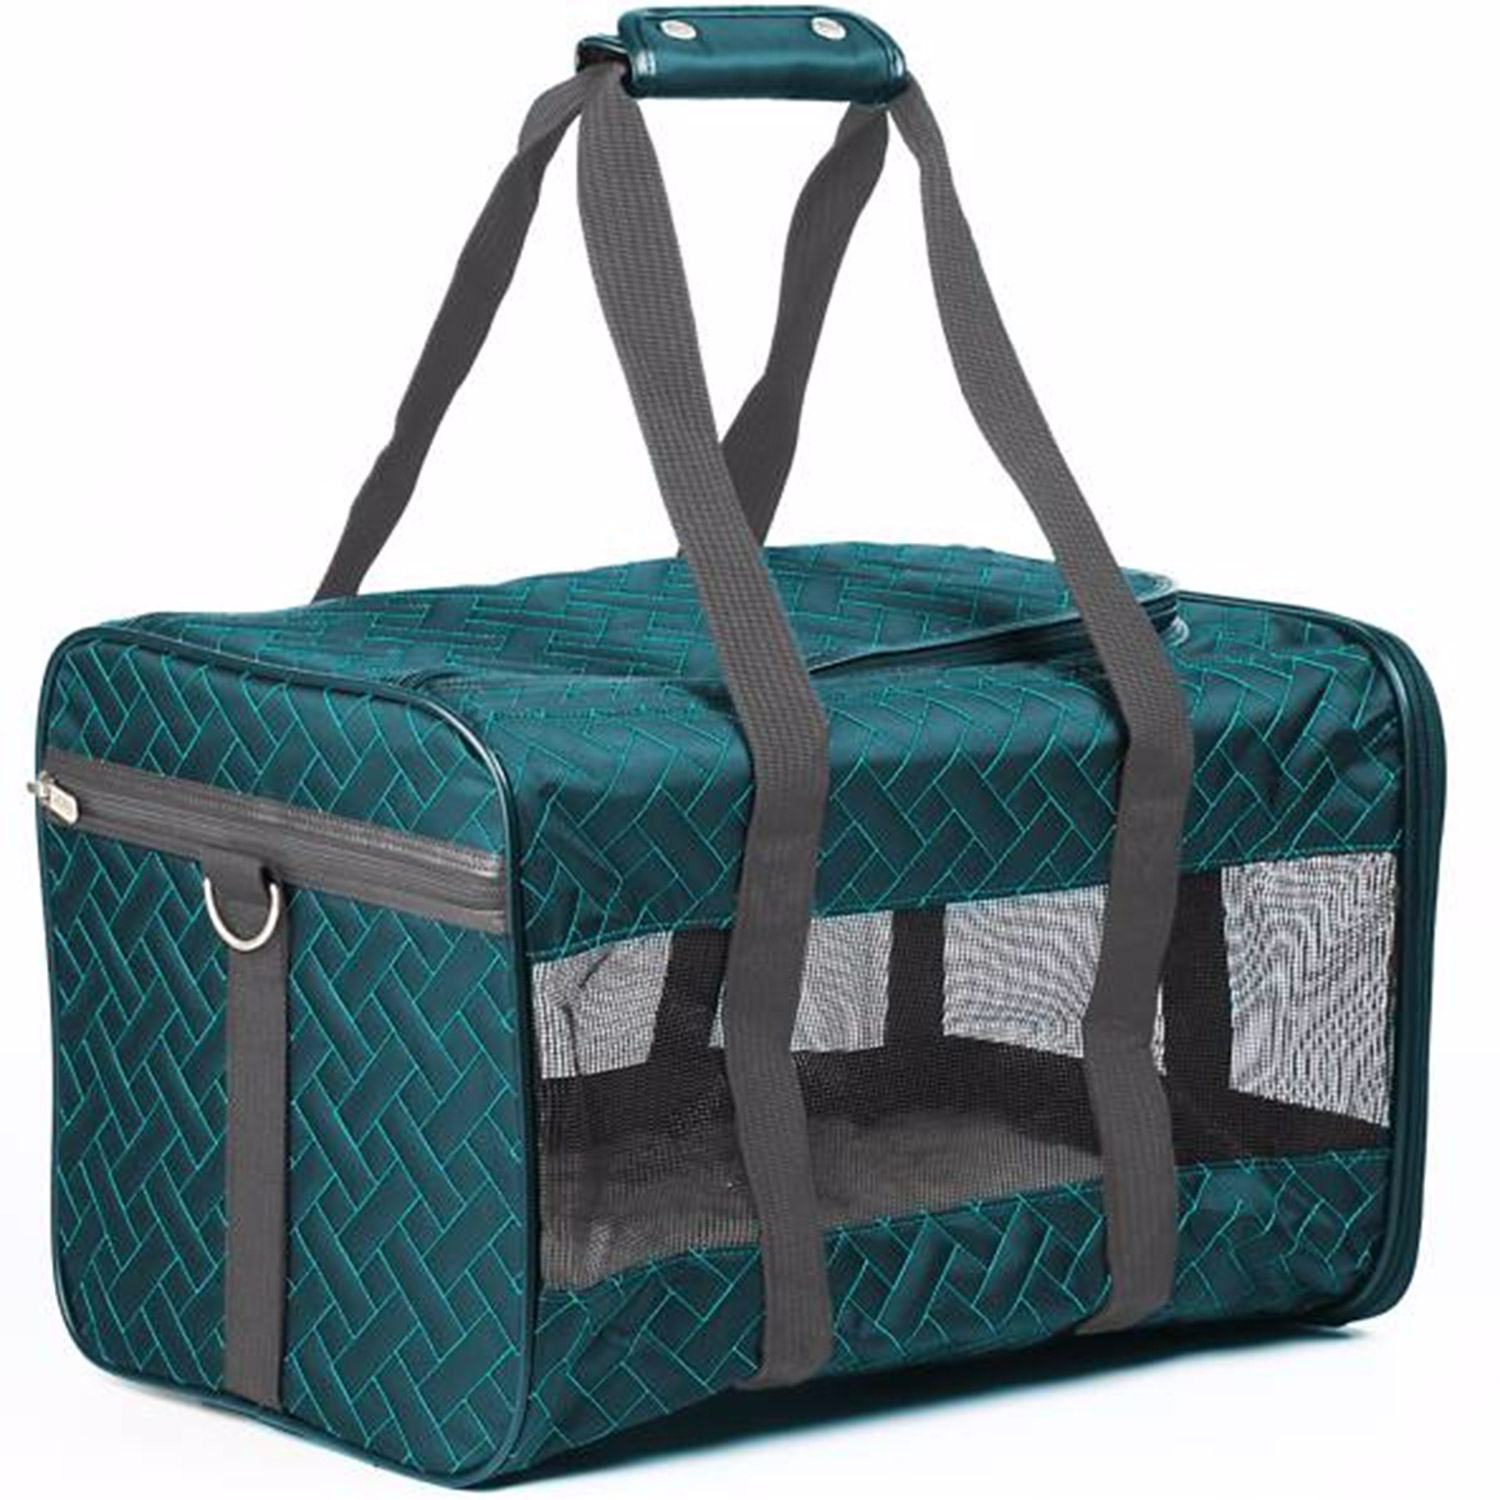 Sherpa-Teal-Original-Deluxe-Carrier